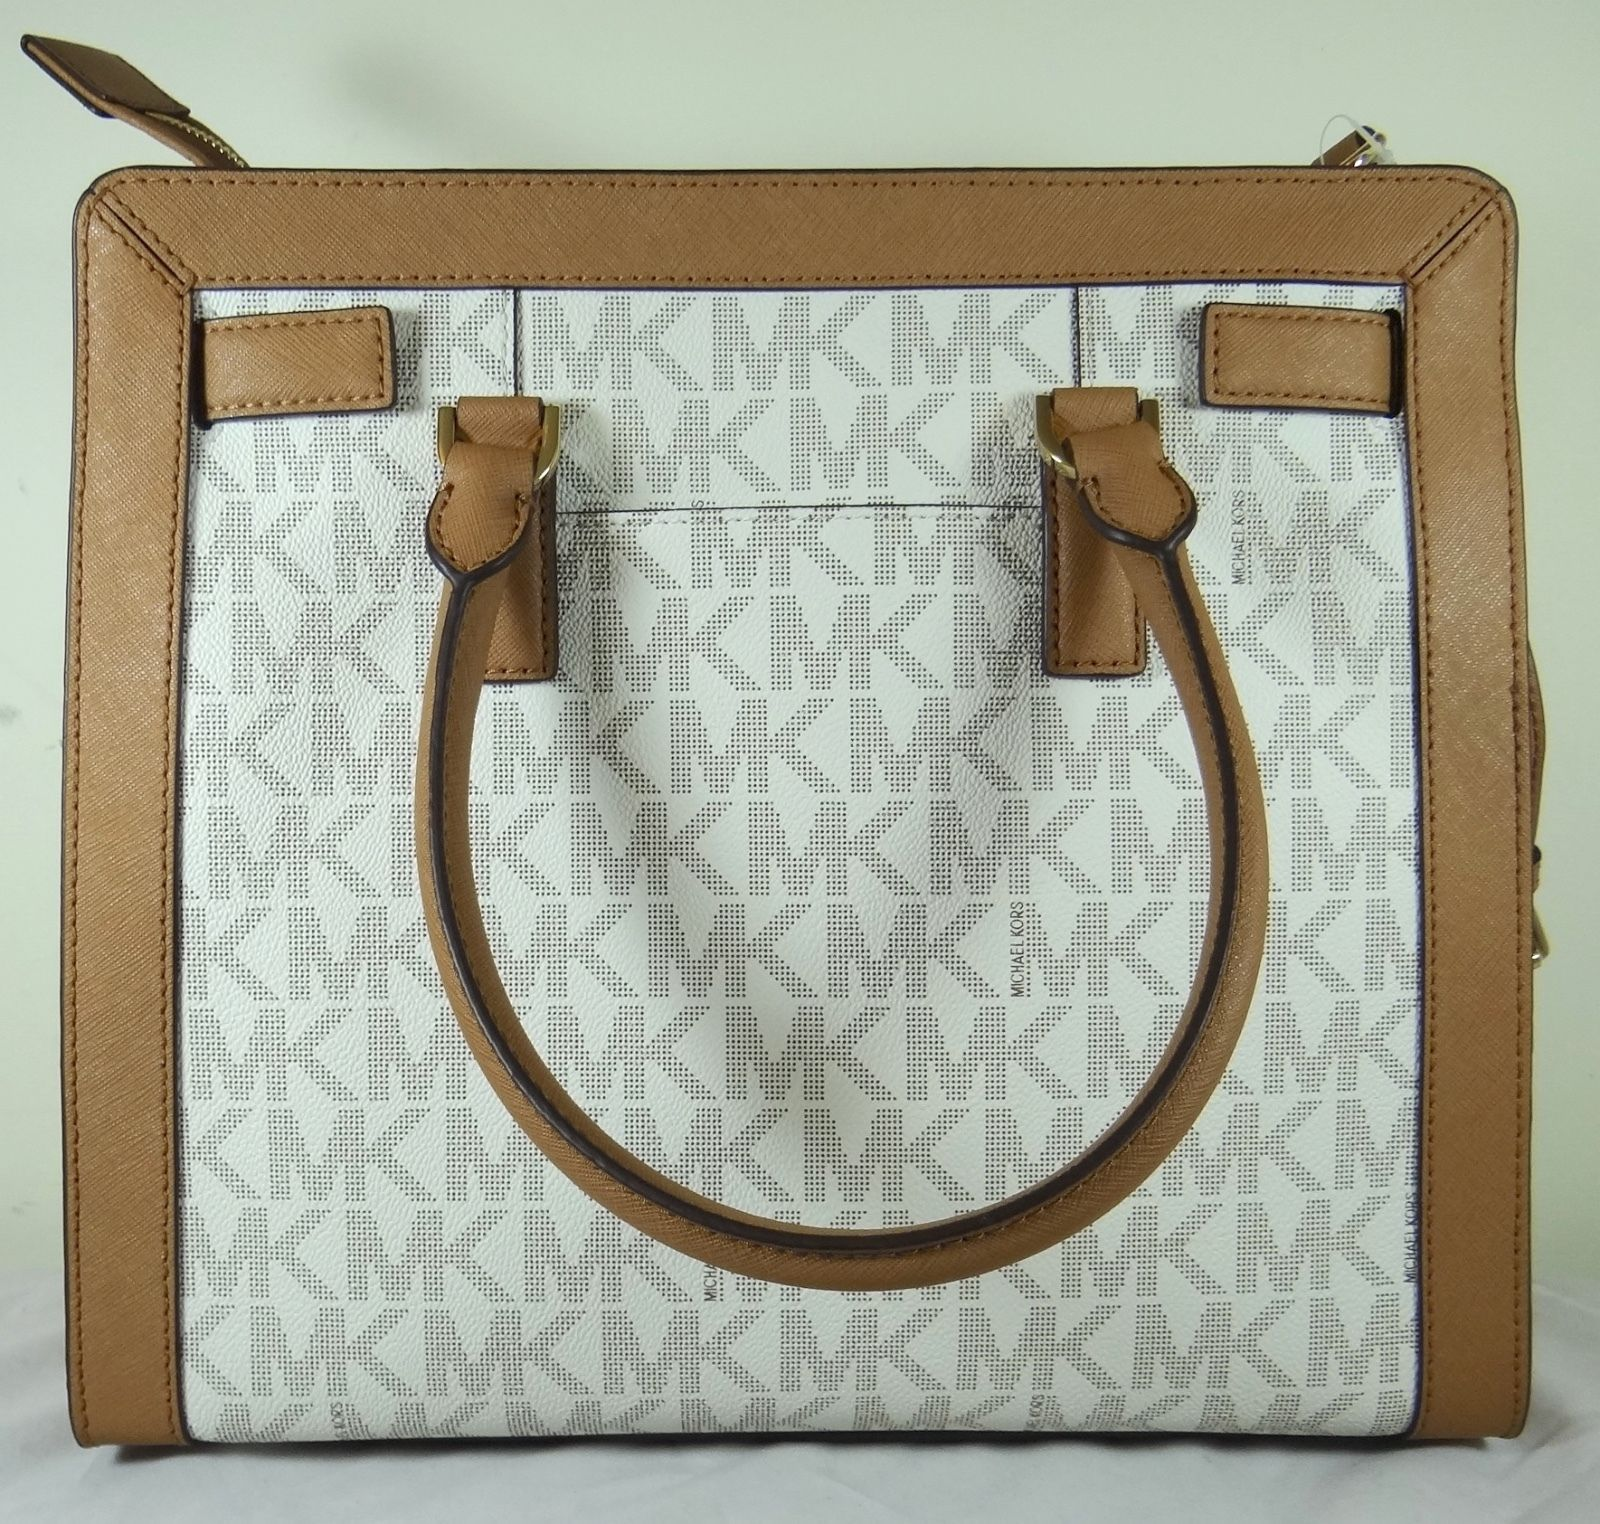 f5e8517e4a58 Michael Kors Dillon Large North South Vanilla Signature Satchel Tote Bag -  Walmart.com